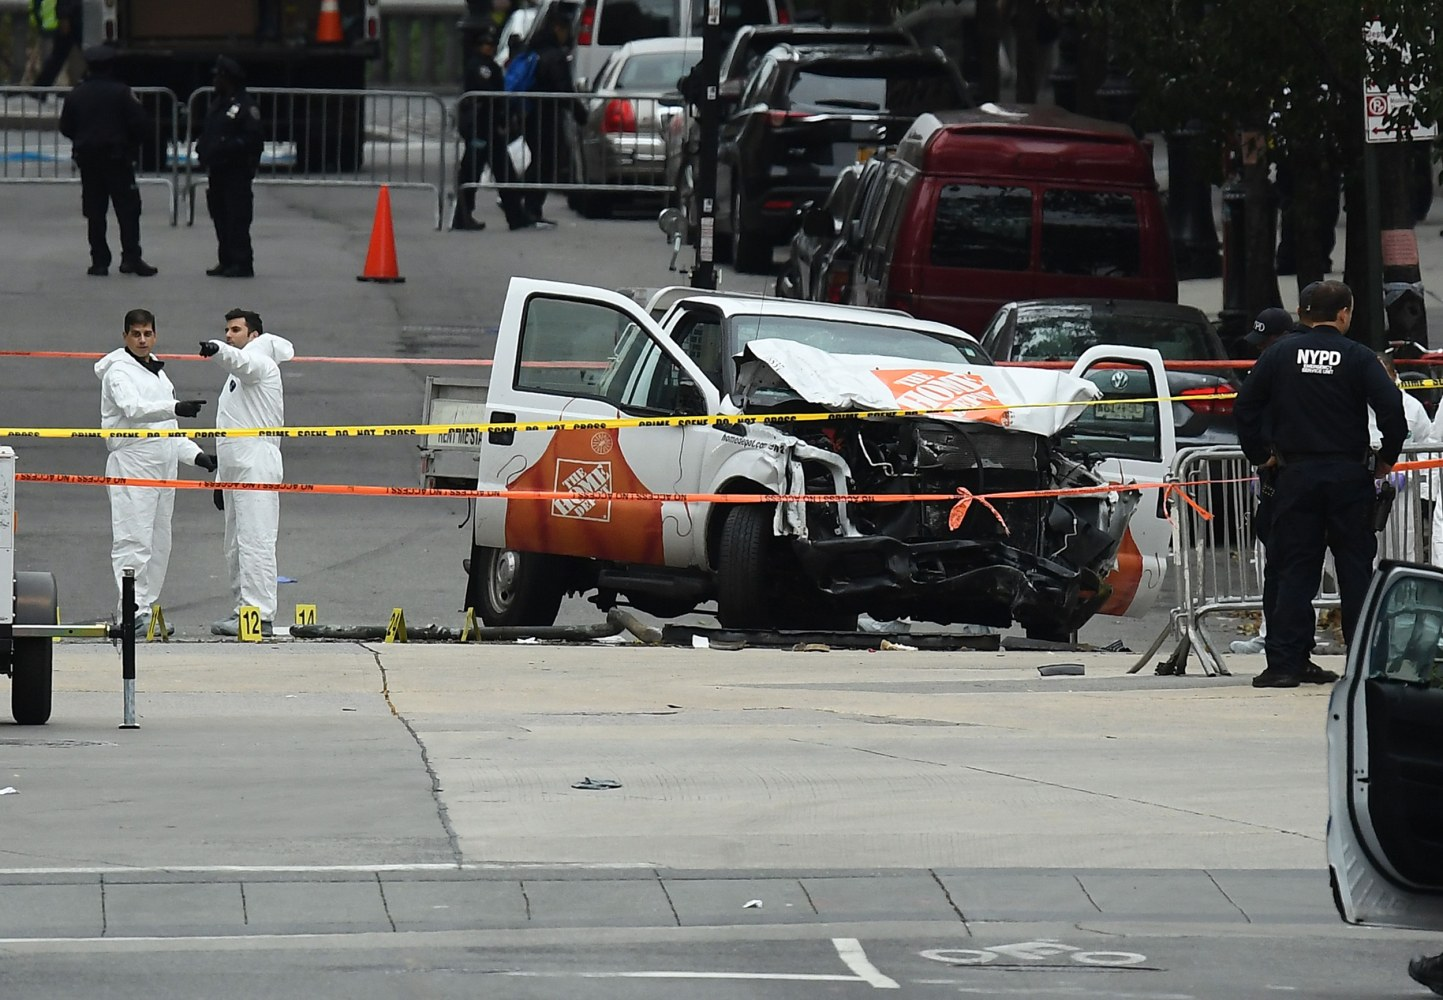 New York Truck Attack Suspect 'Enemy Combatant' - White House